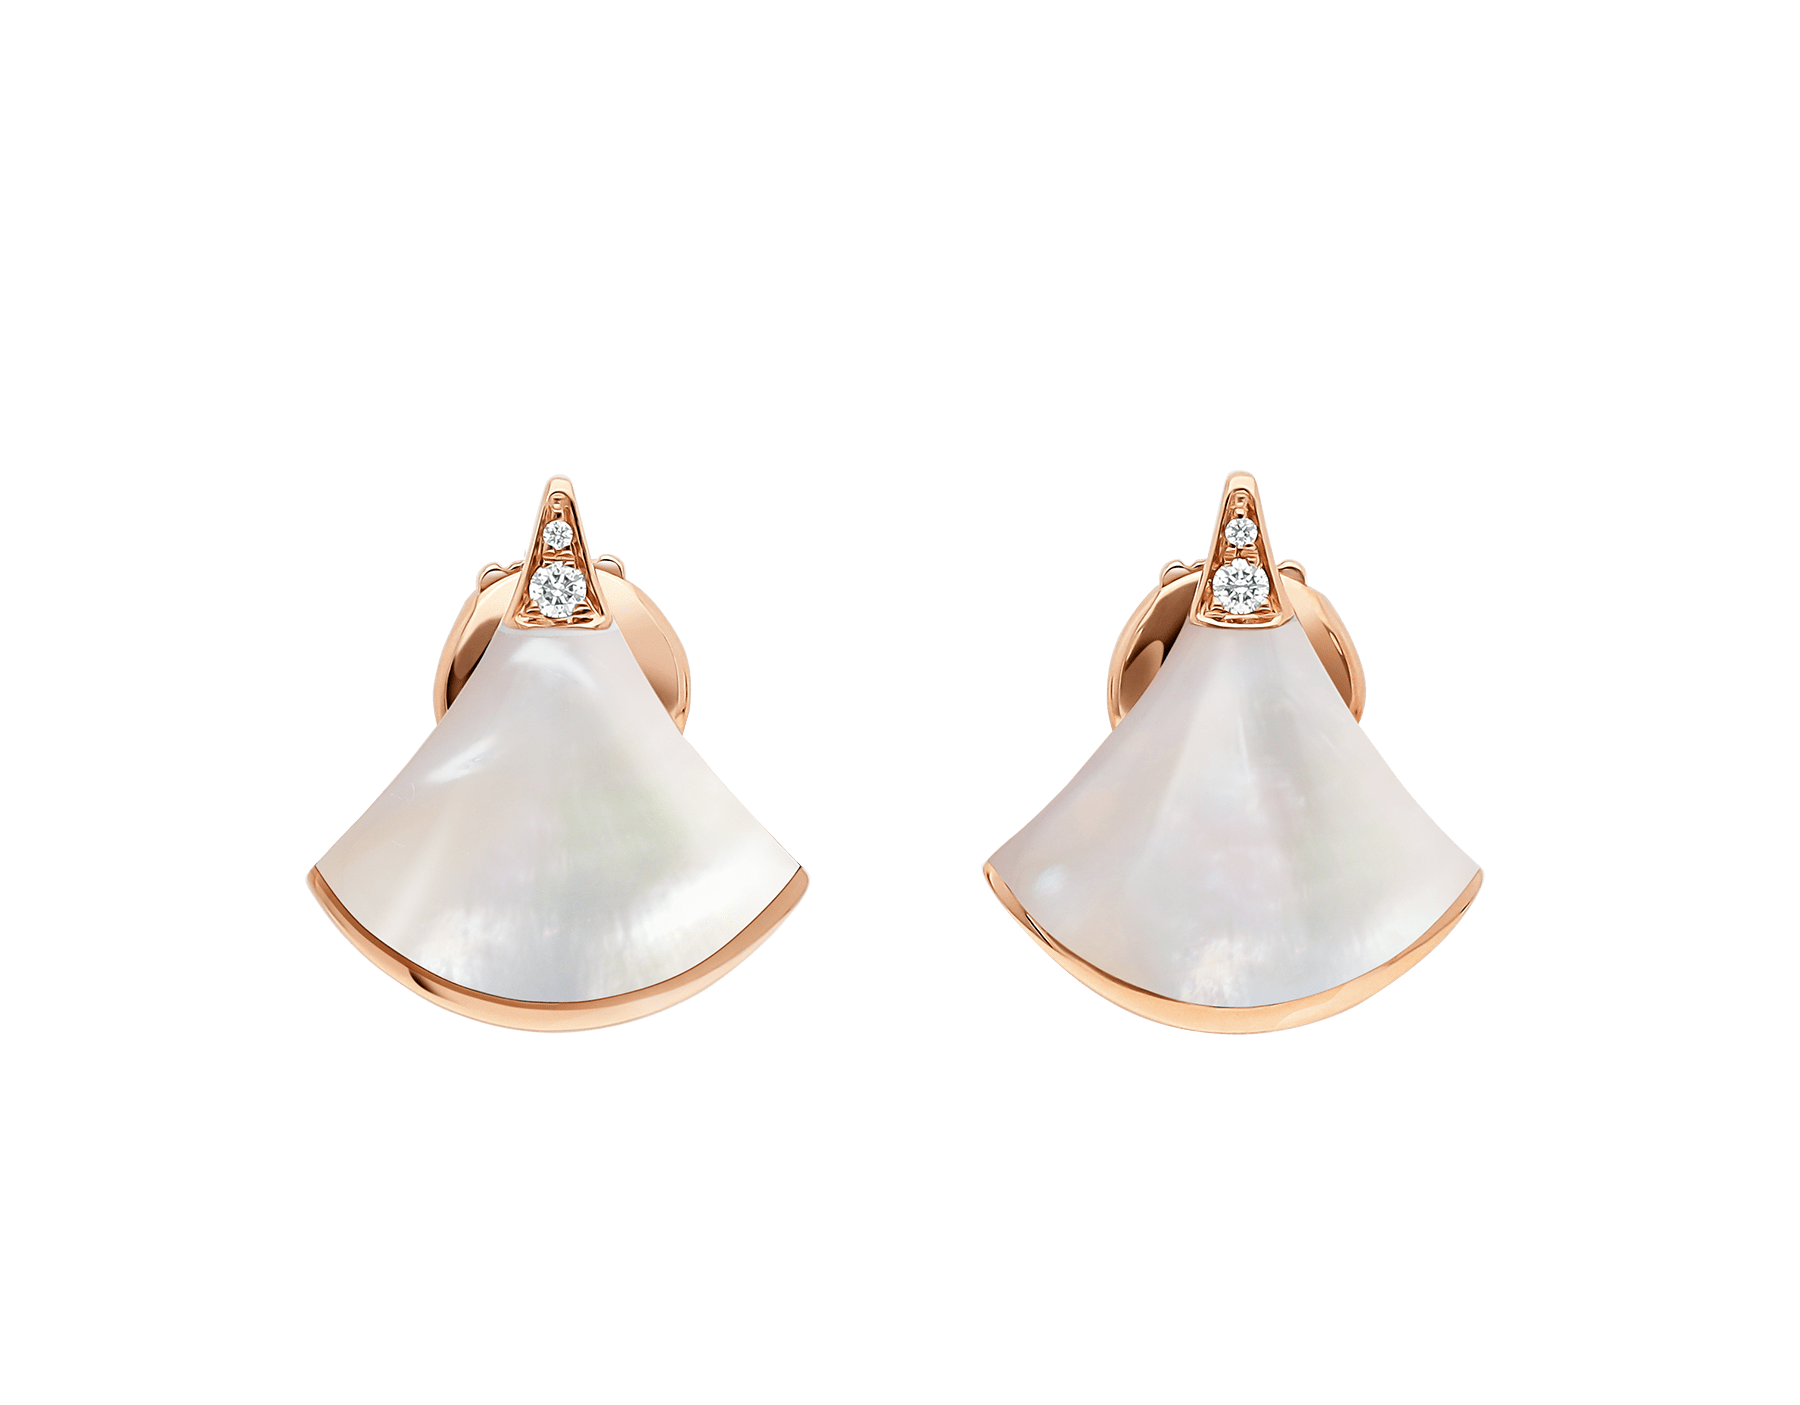 DIVAS' DREAM earrings in 18 kt rose gold, set with mother-of-pearl and pavé diamonds. 352600 image 1